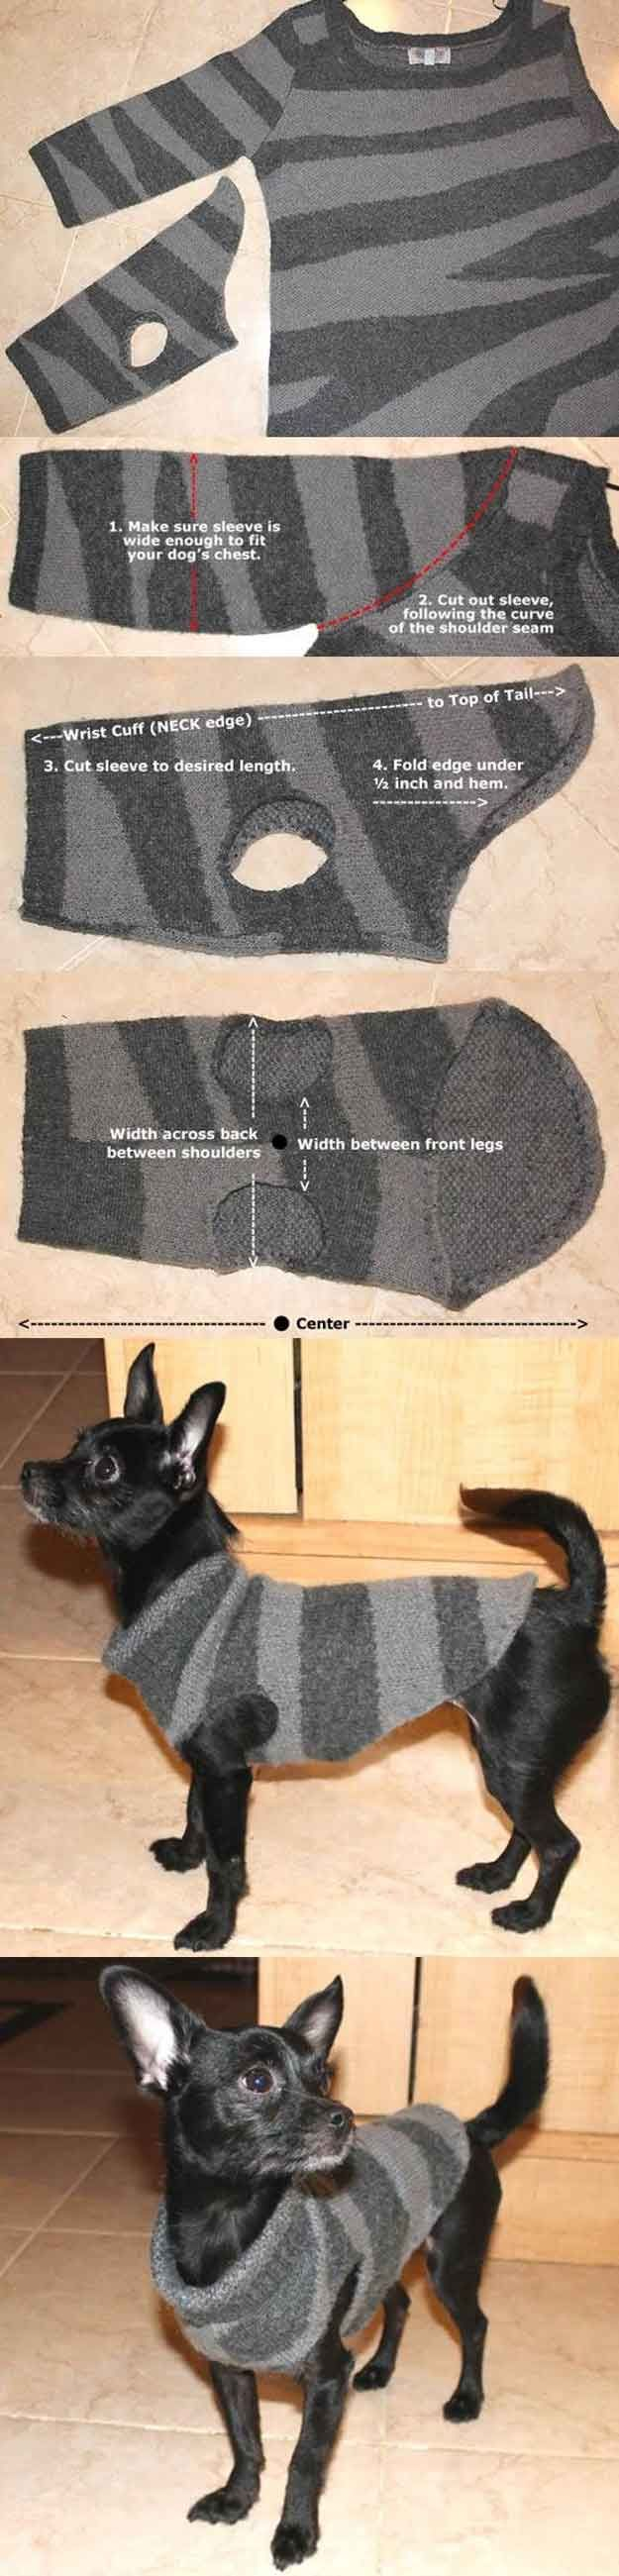 Best 25 sweaters for dogs ideas on pinterest shirts for dogs 21 diy dog sweaters instructions upcycling dog sweater bankloansurffo Image collections